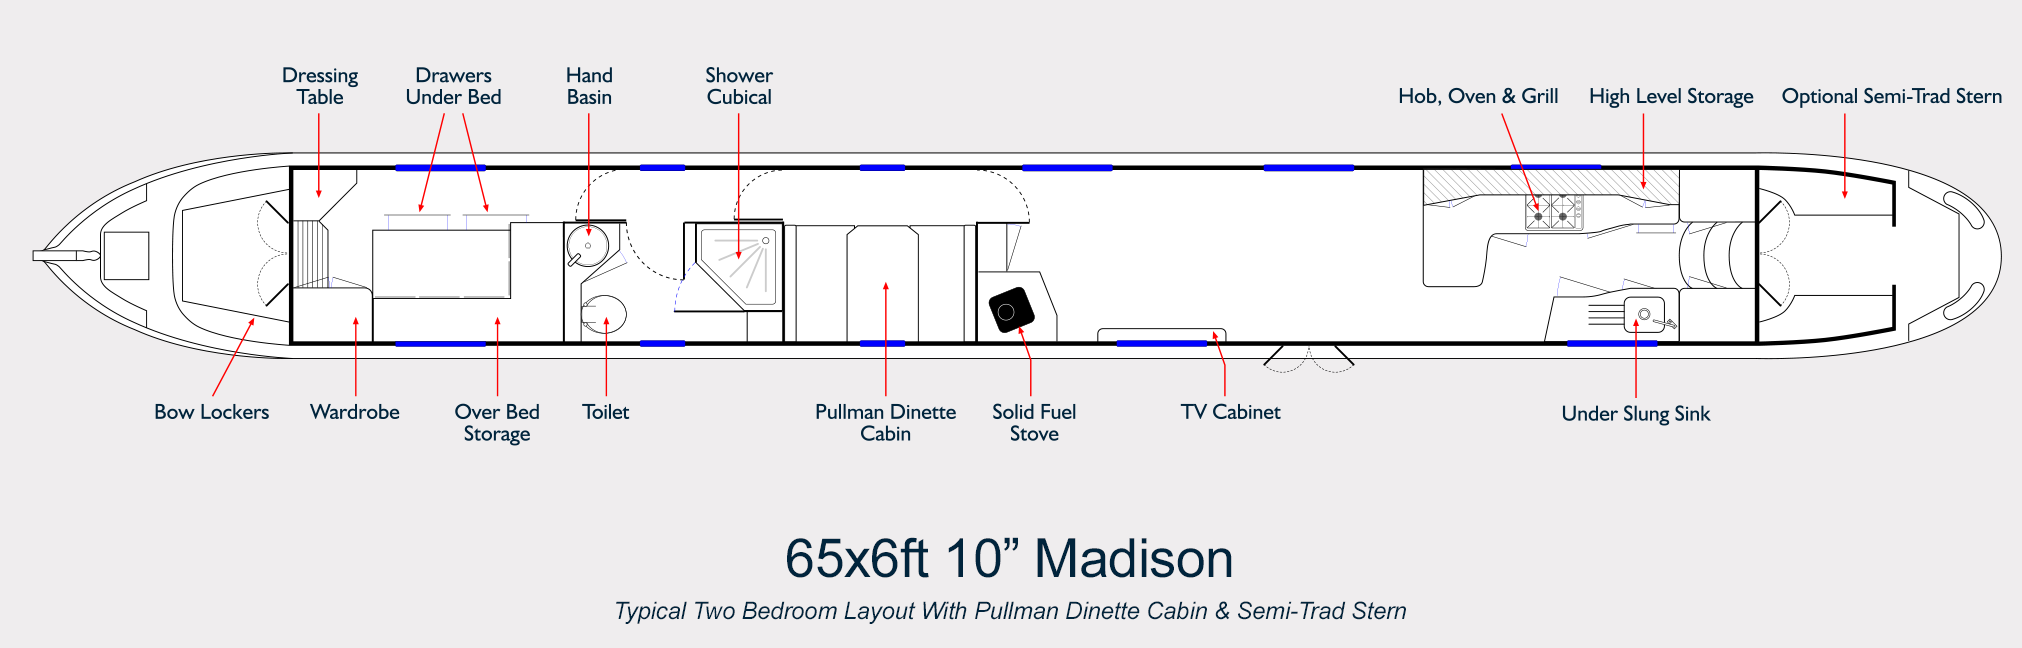 Aqualine Narrowboat Builders Layout Drawing 65ft Madison